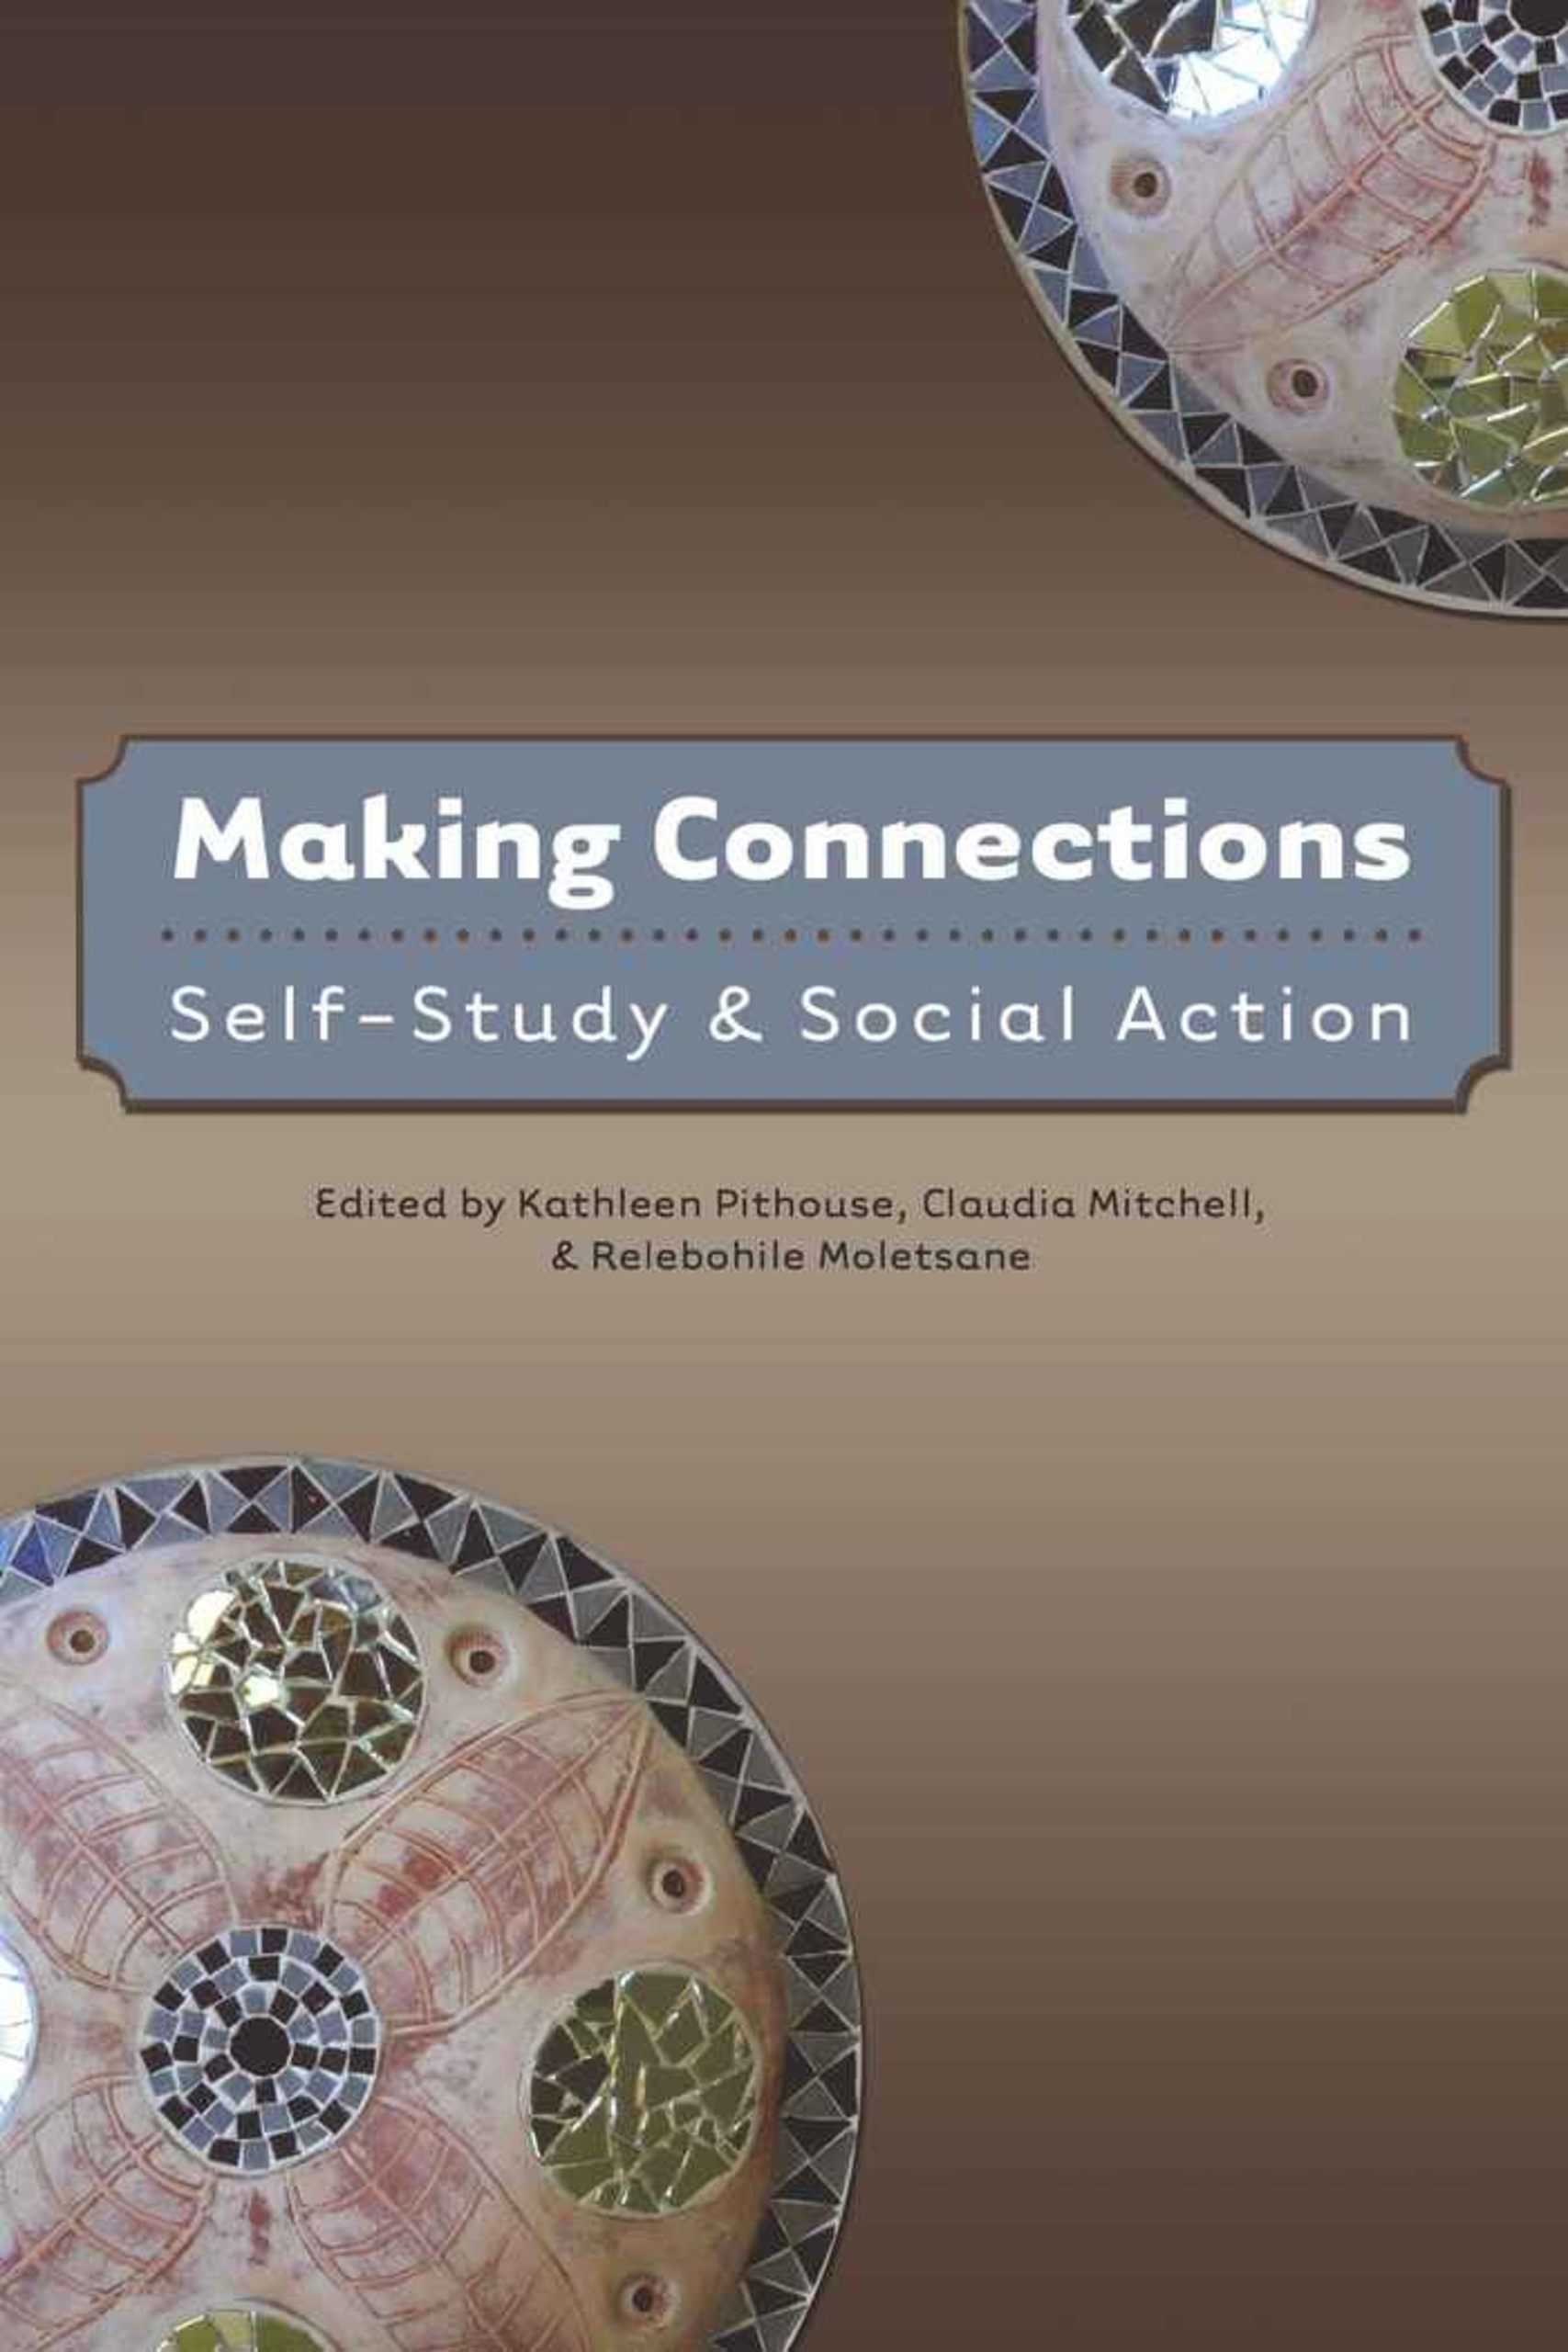 Title: Making Connections